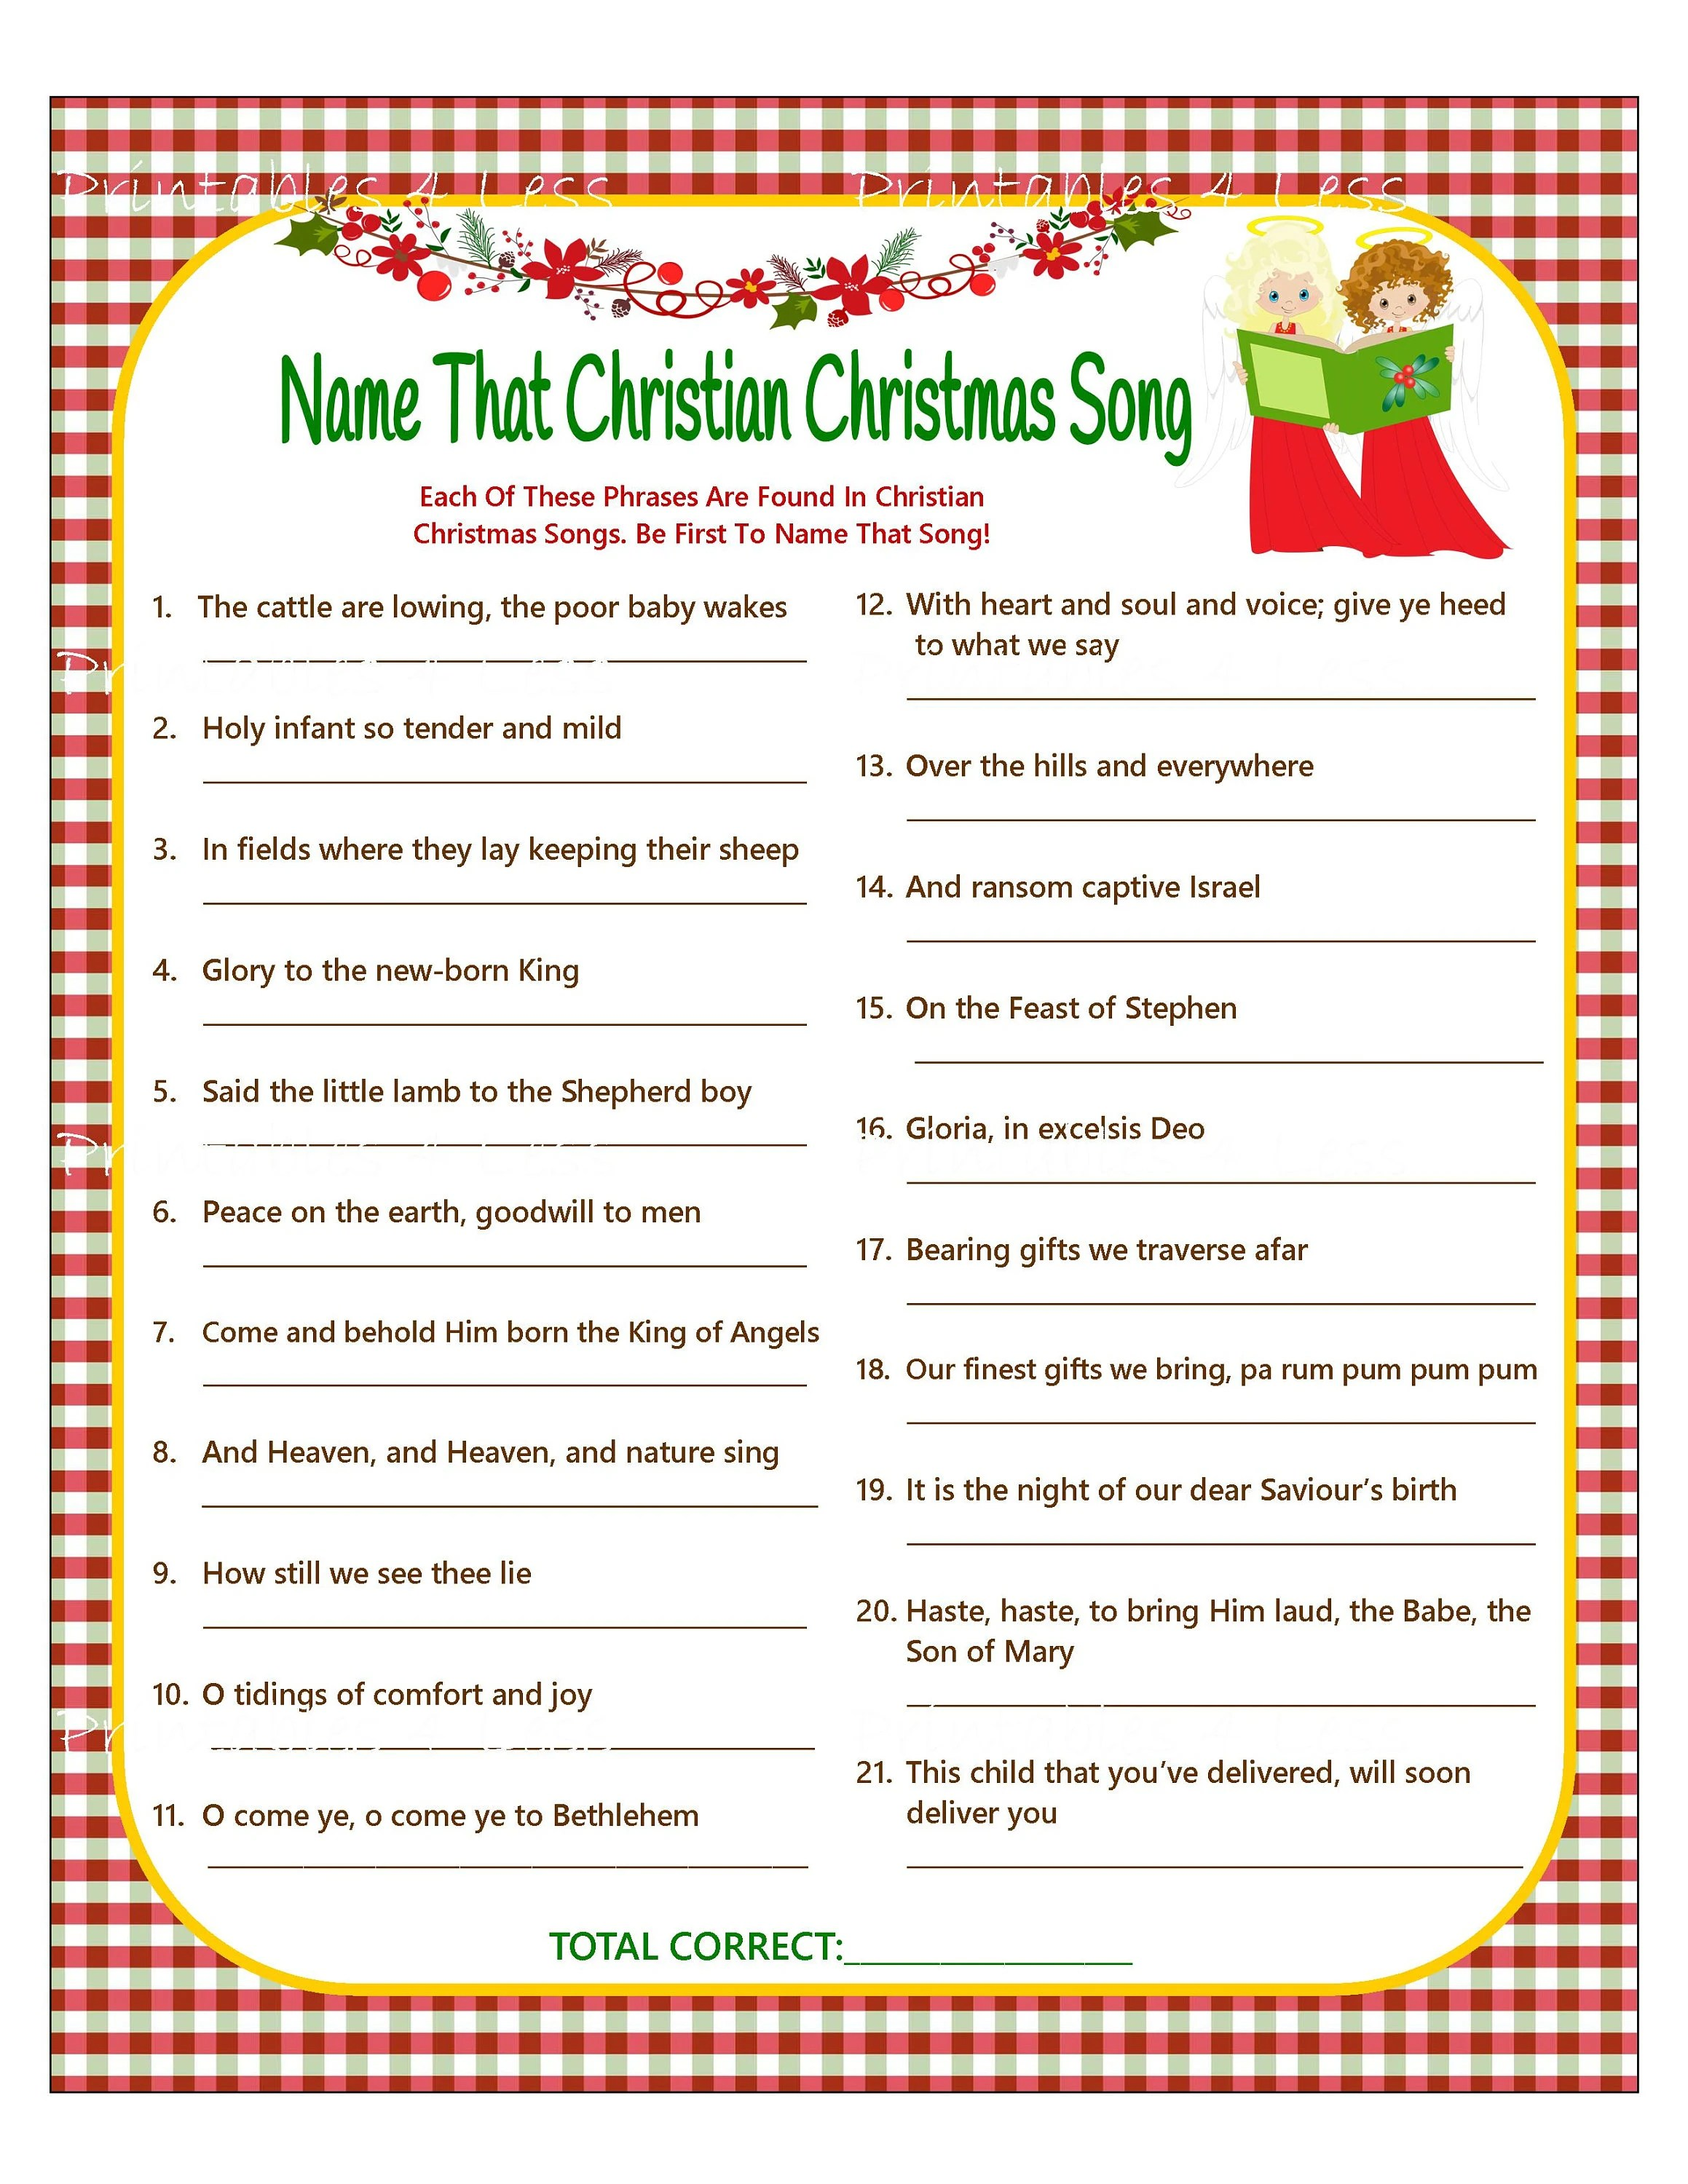 christmas song game christian